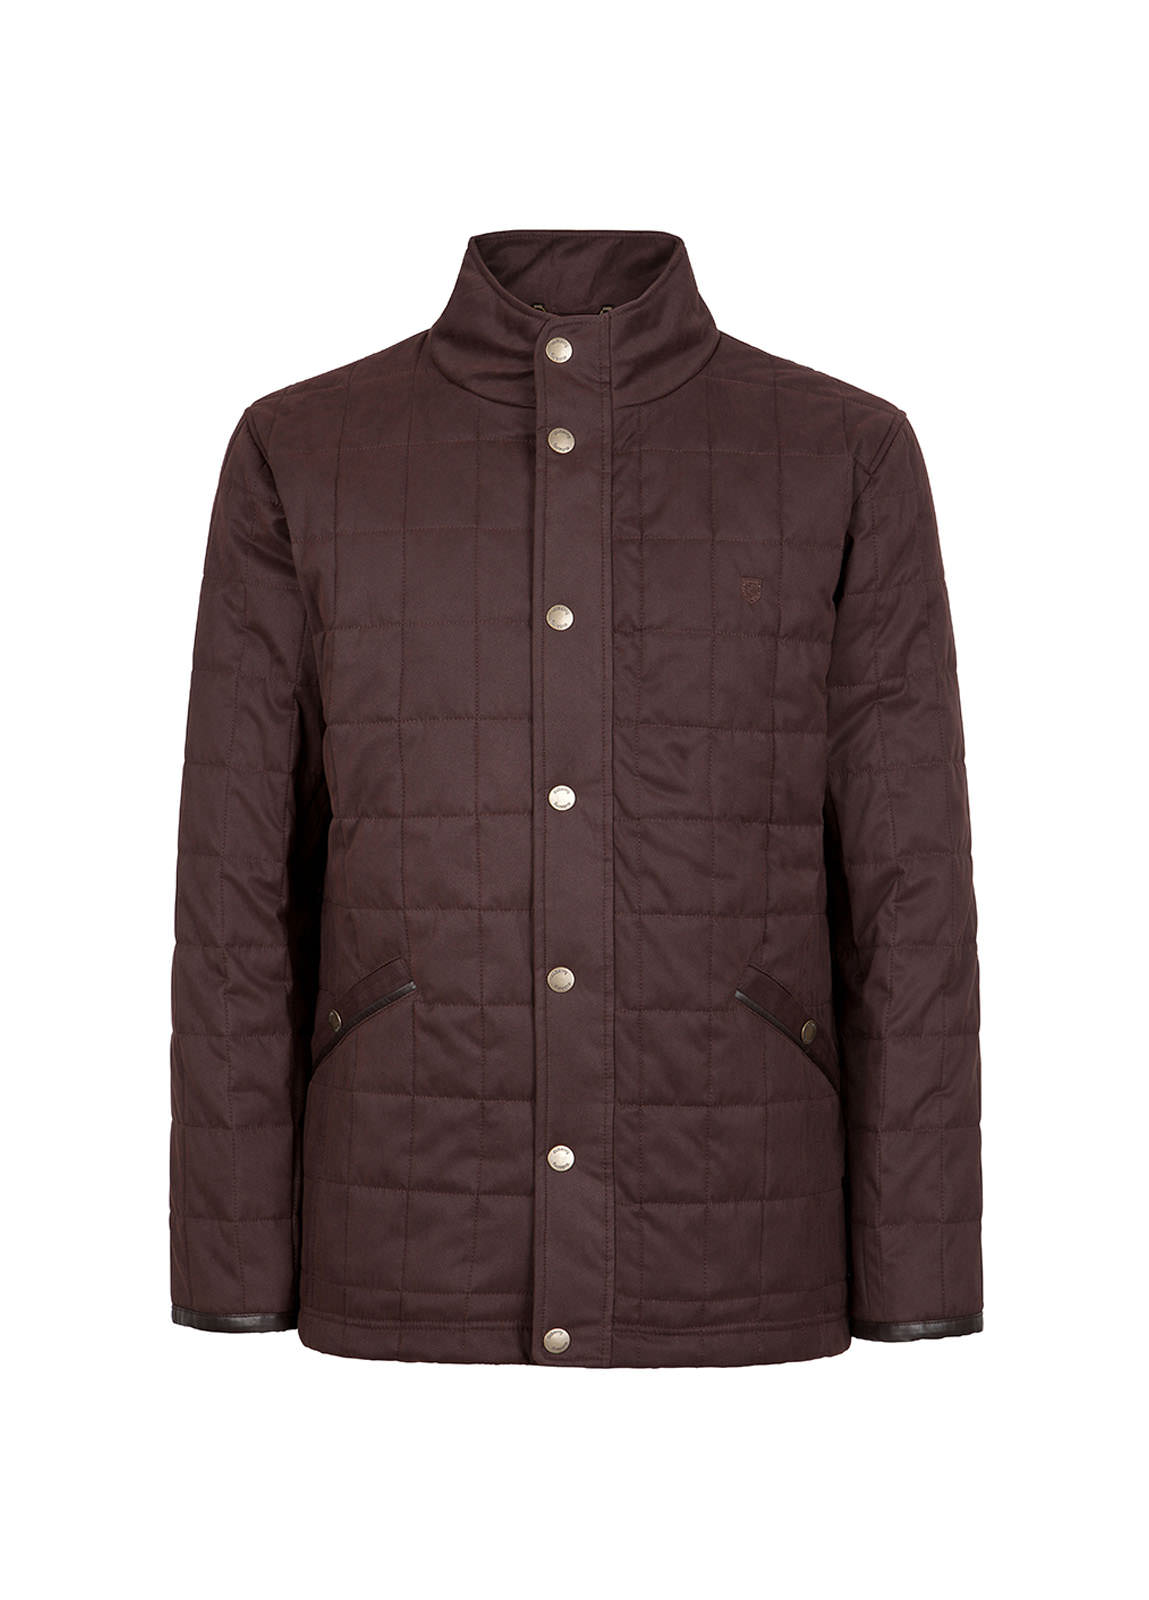 Dubarry_ Beckett Quilted Jacket - Chestnut_Image_2